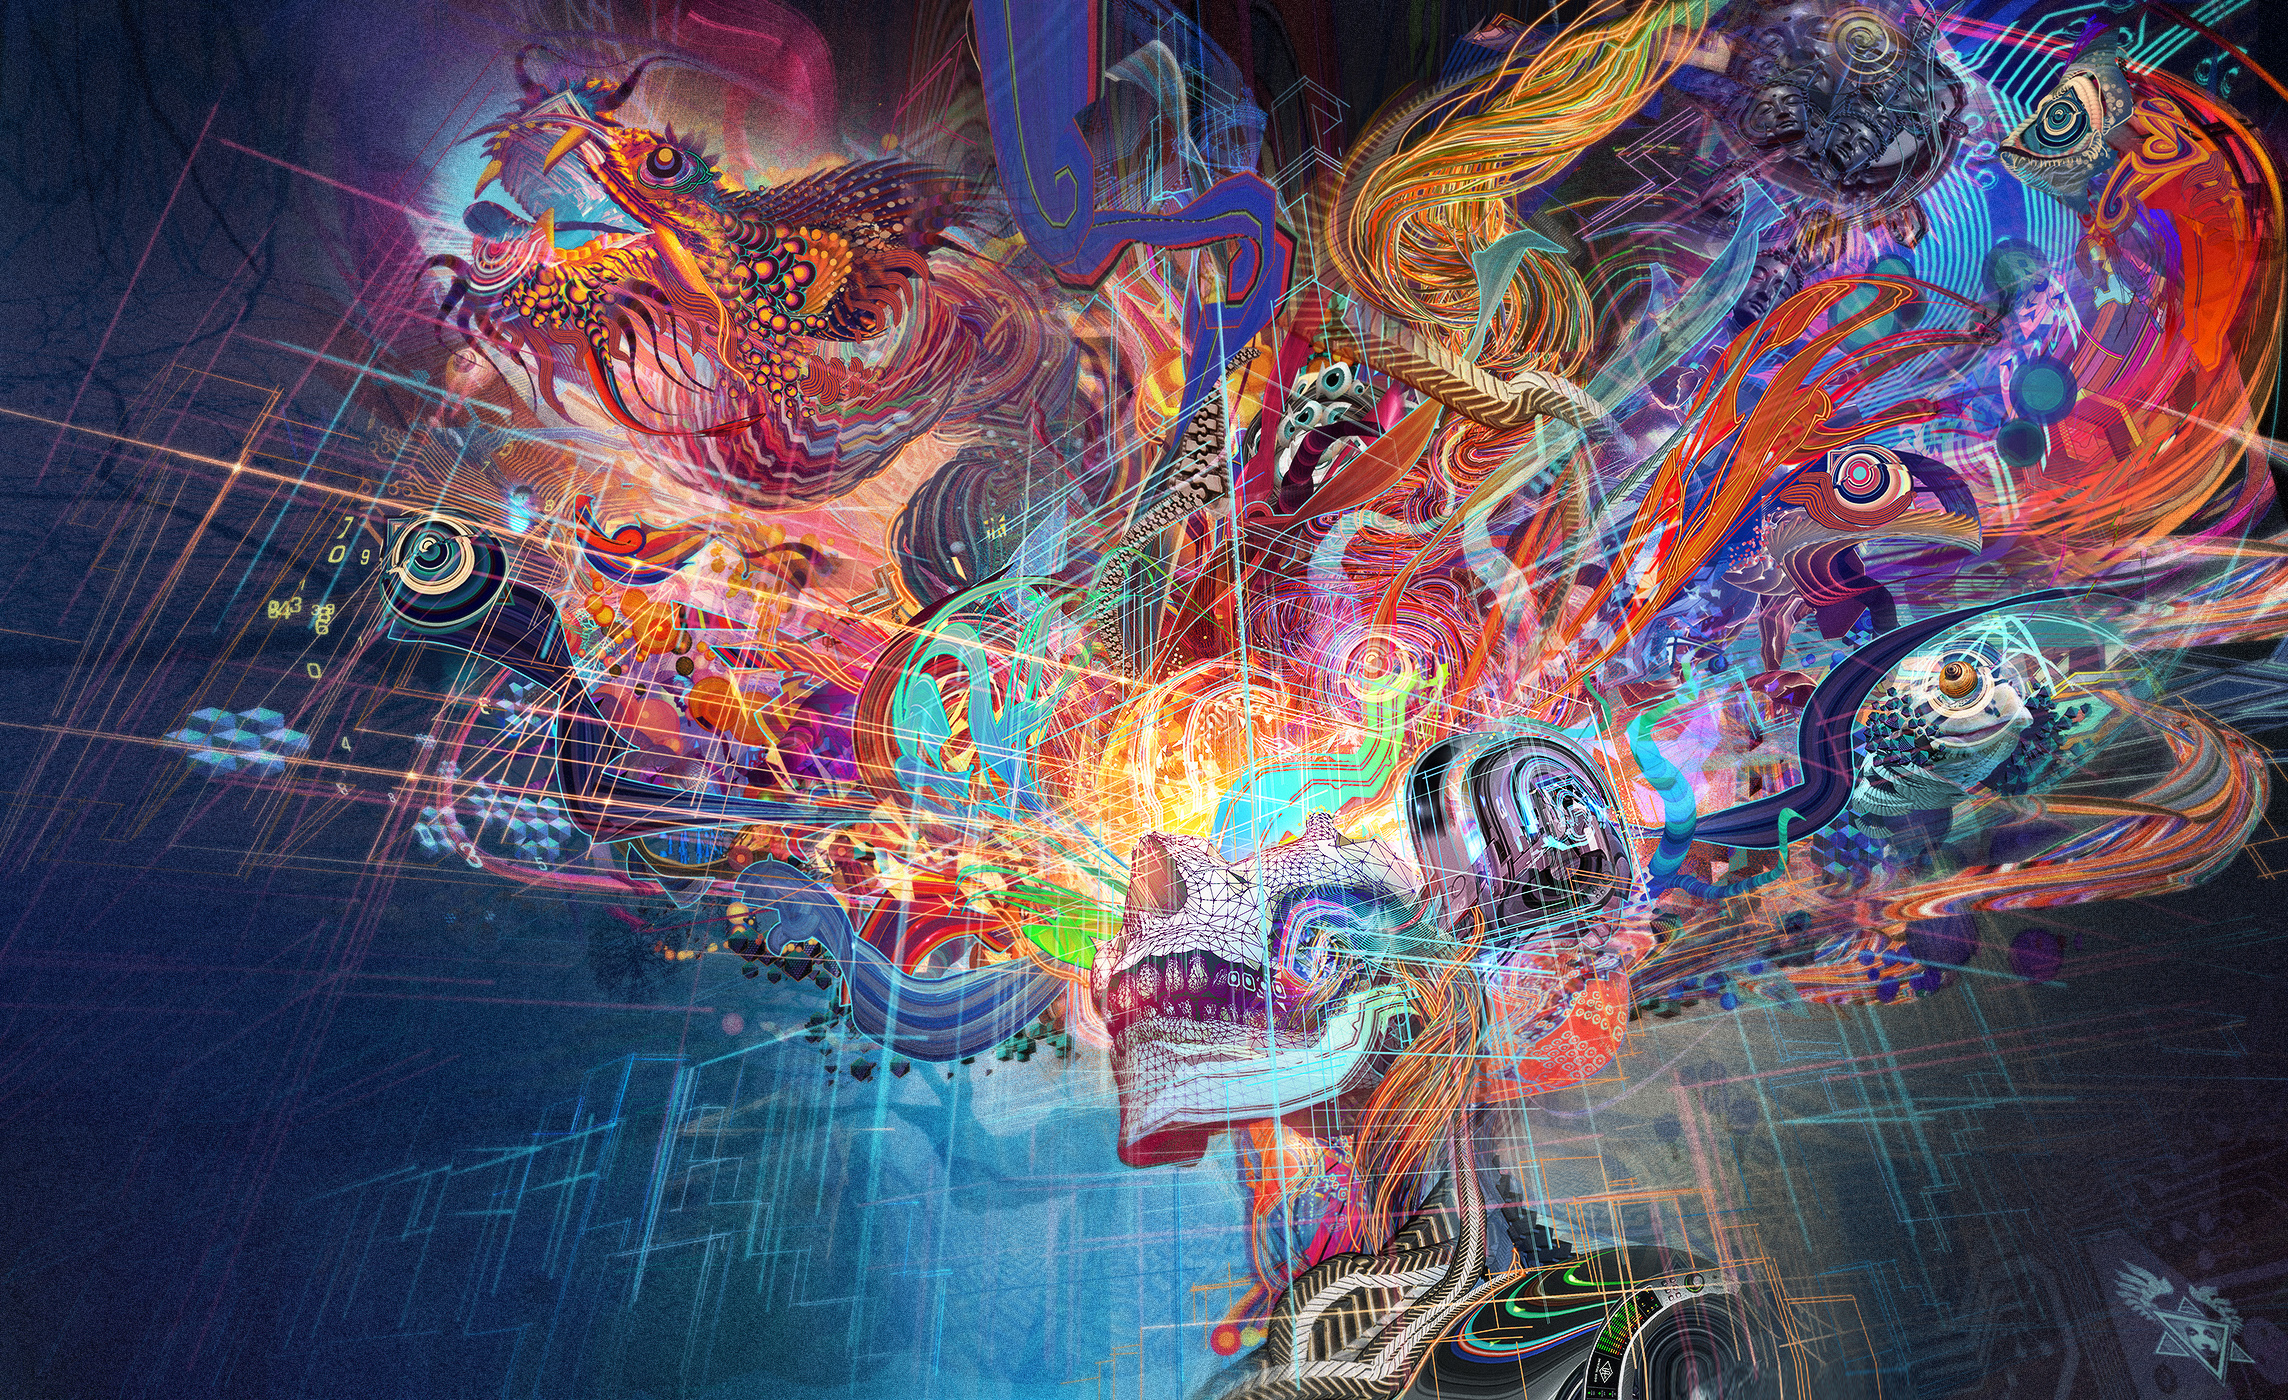 20 Mind Melting Artworks By Visionary Arts Pioneer Android Jones